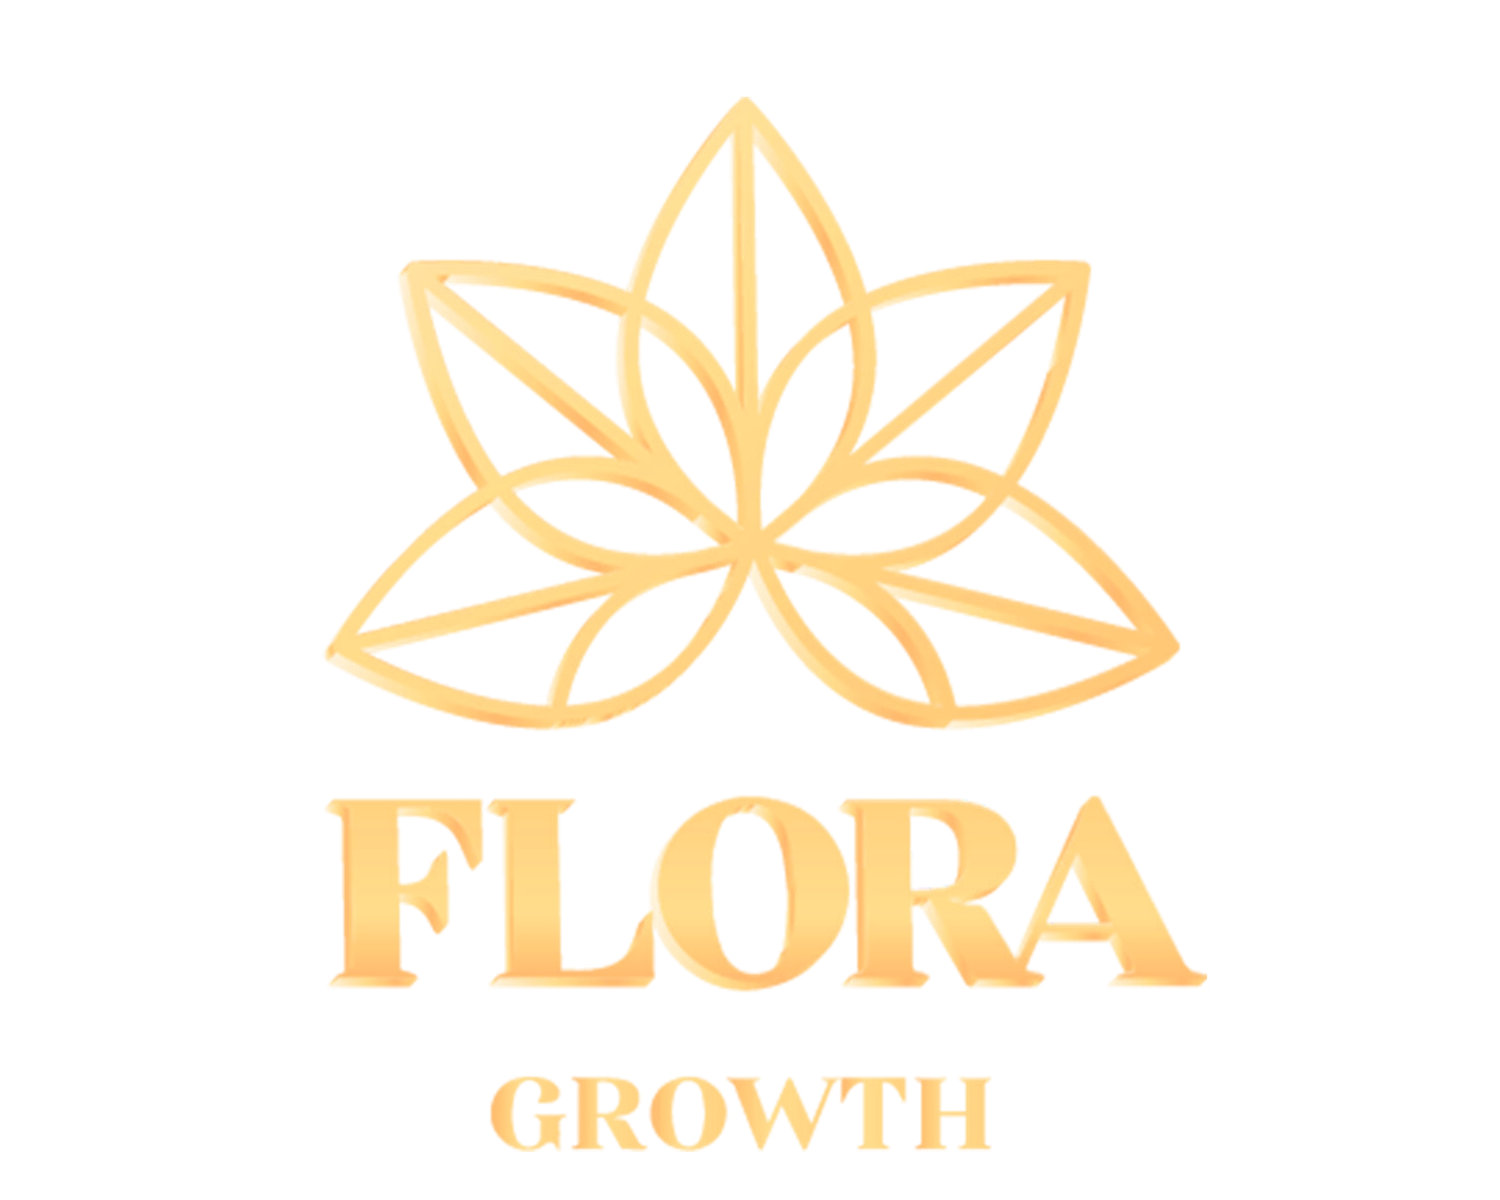 Flora Growth Increases Support of COVID-19 Prevention Efforts Through Agreement to Acquire Breeze Laboratory